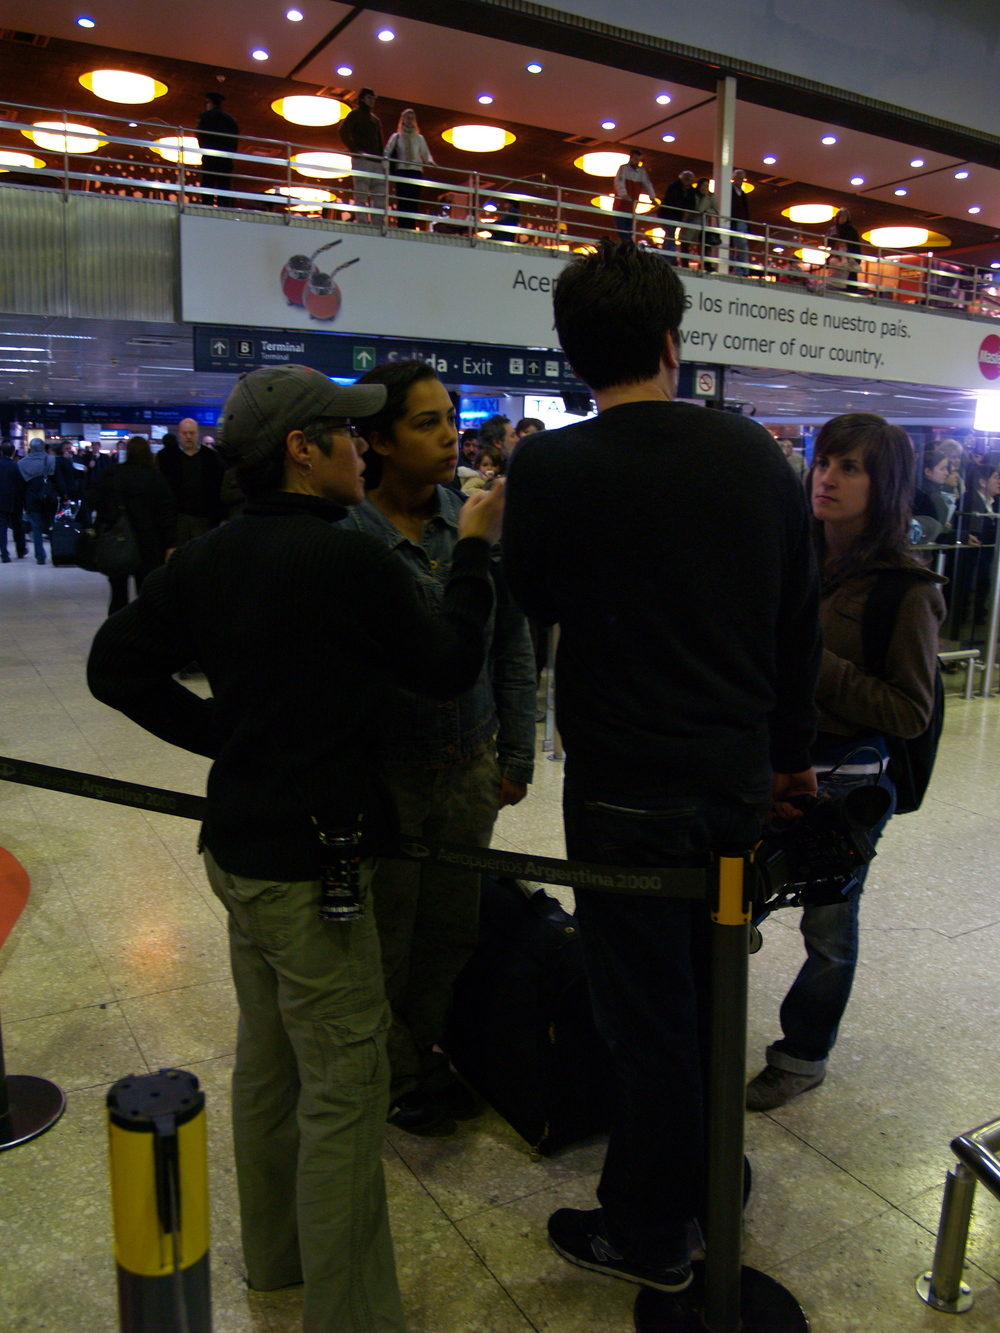 Cristina and crew filming at Ezeiza International Airport, Buenos Aires, Argentina.